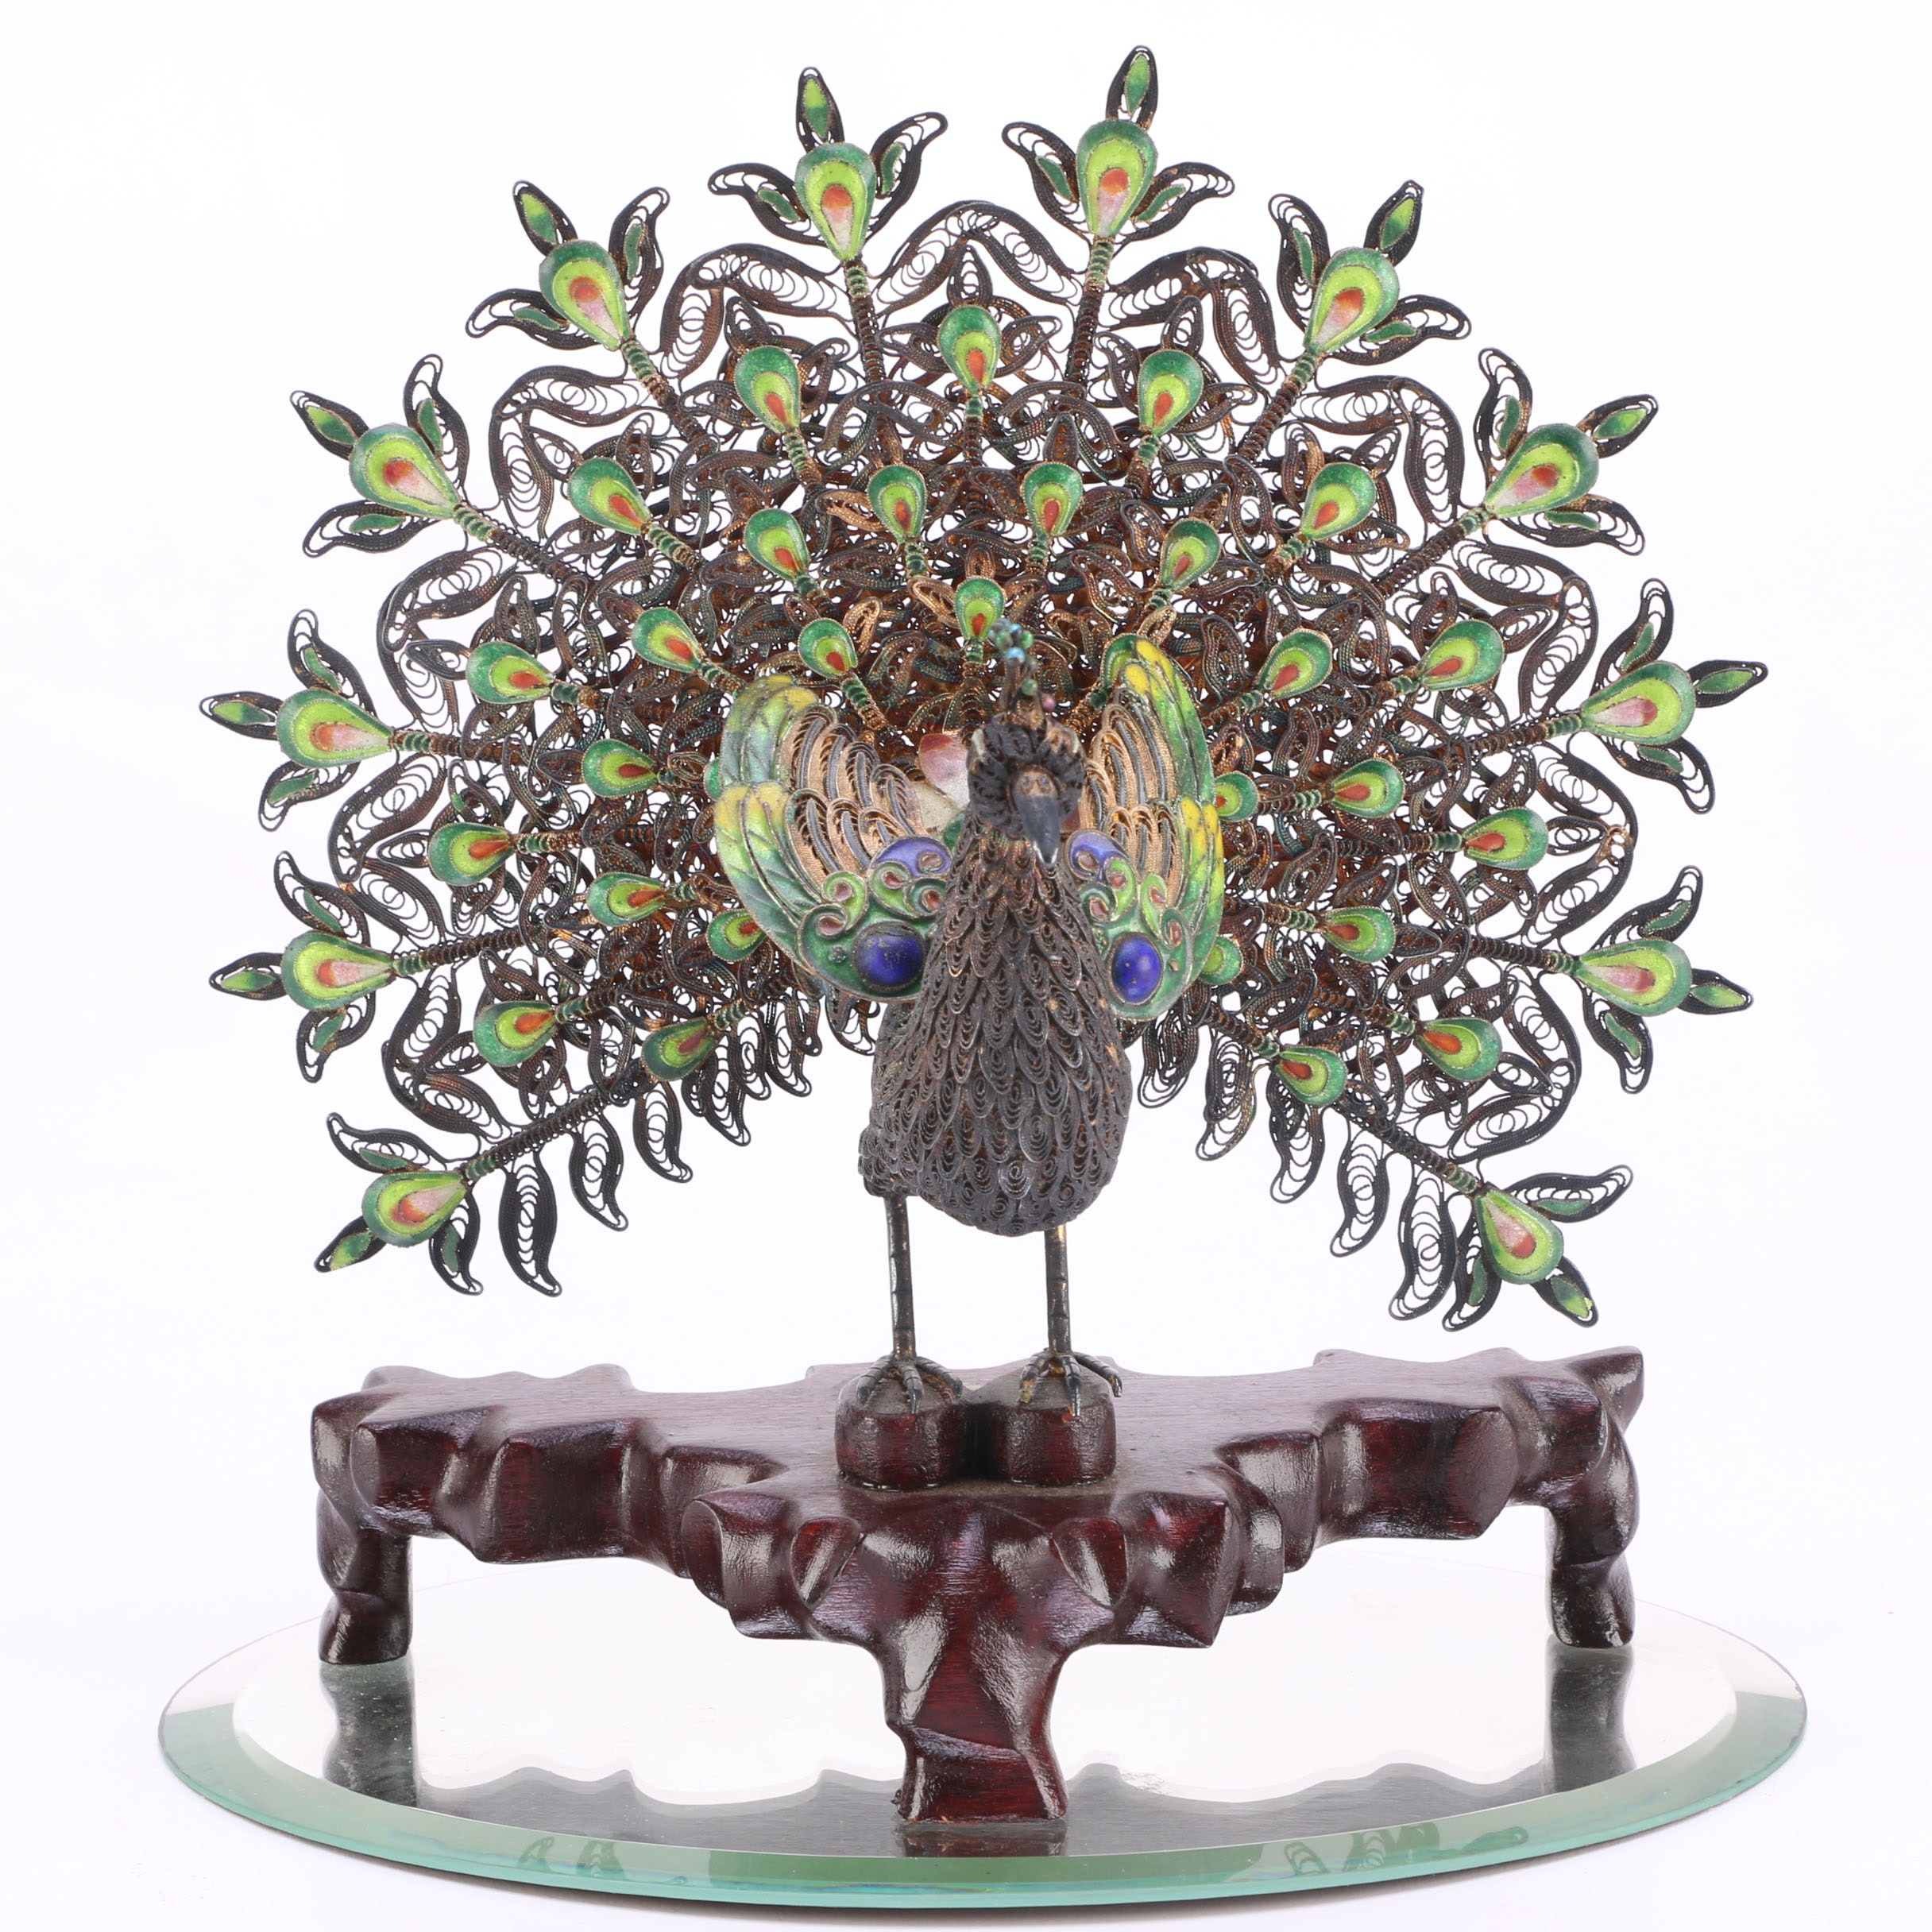 Curled Metal Peacock Table Decor